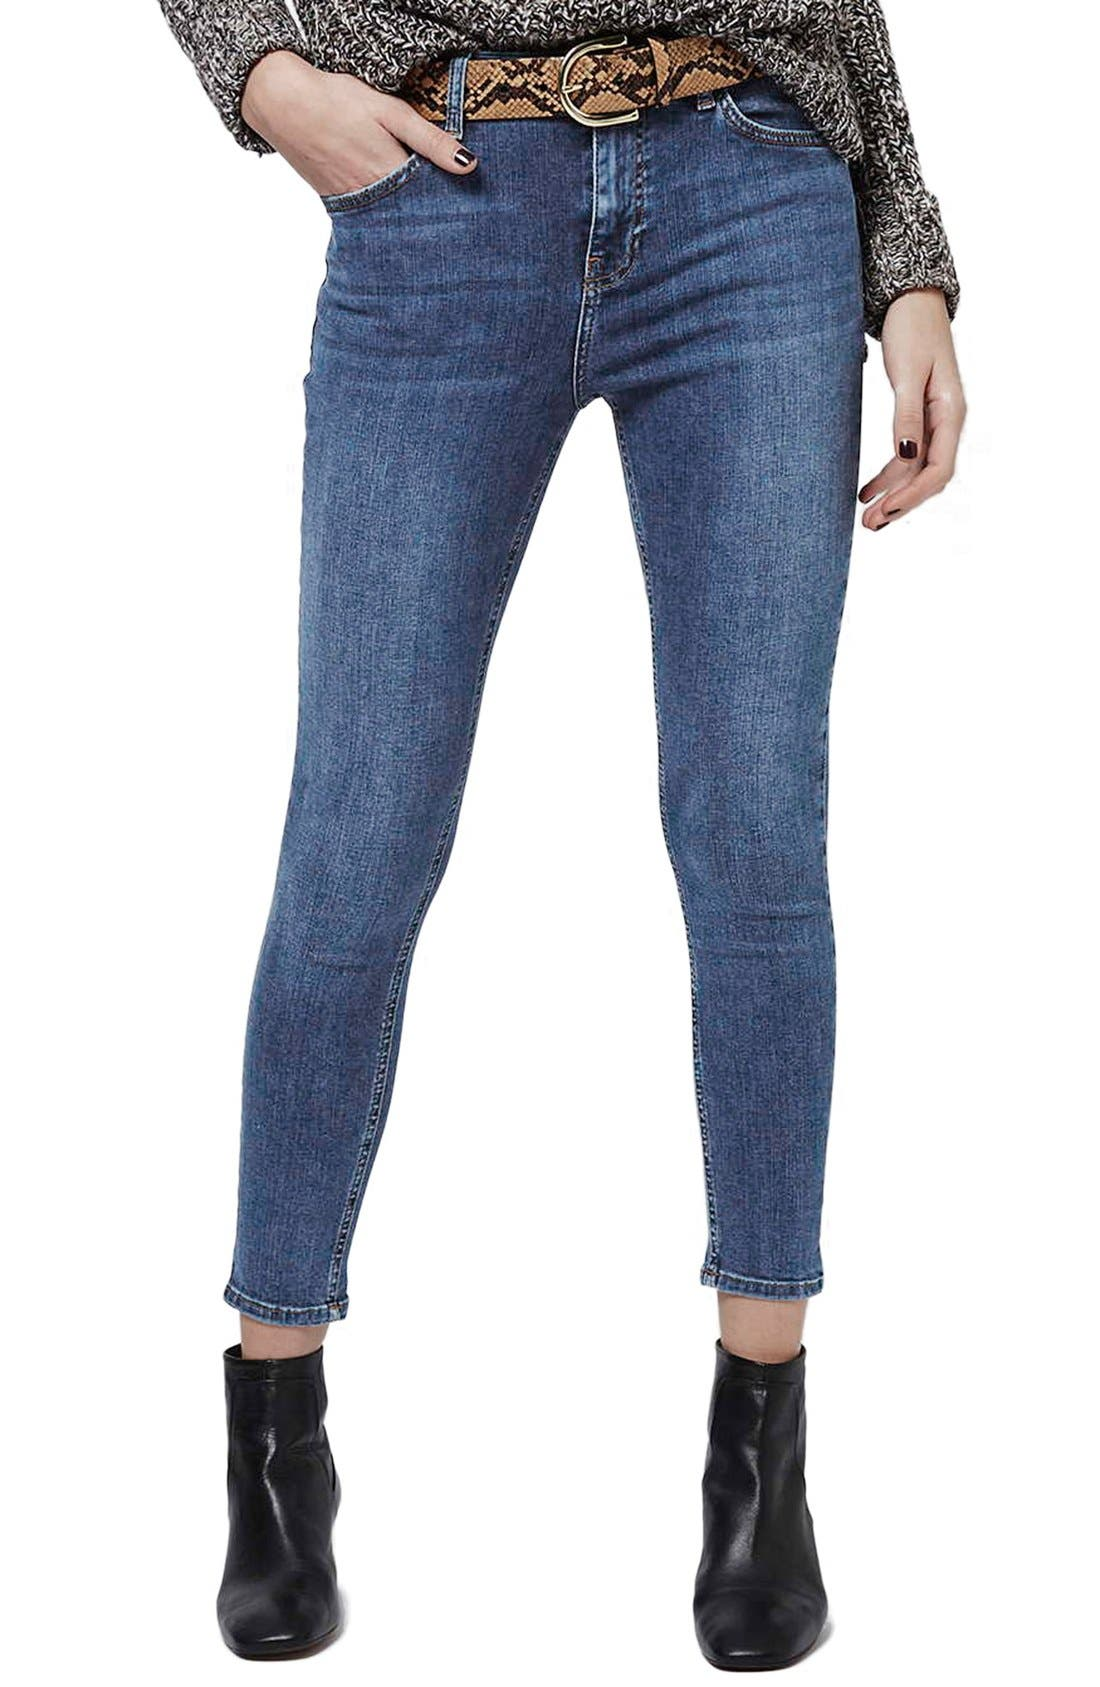 TOPSHOP 'Jamie' High Rise Ankle Skinny Jeans, Main, color, MID DENIM